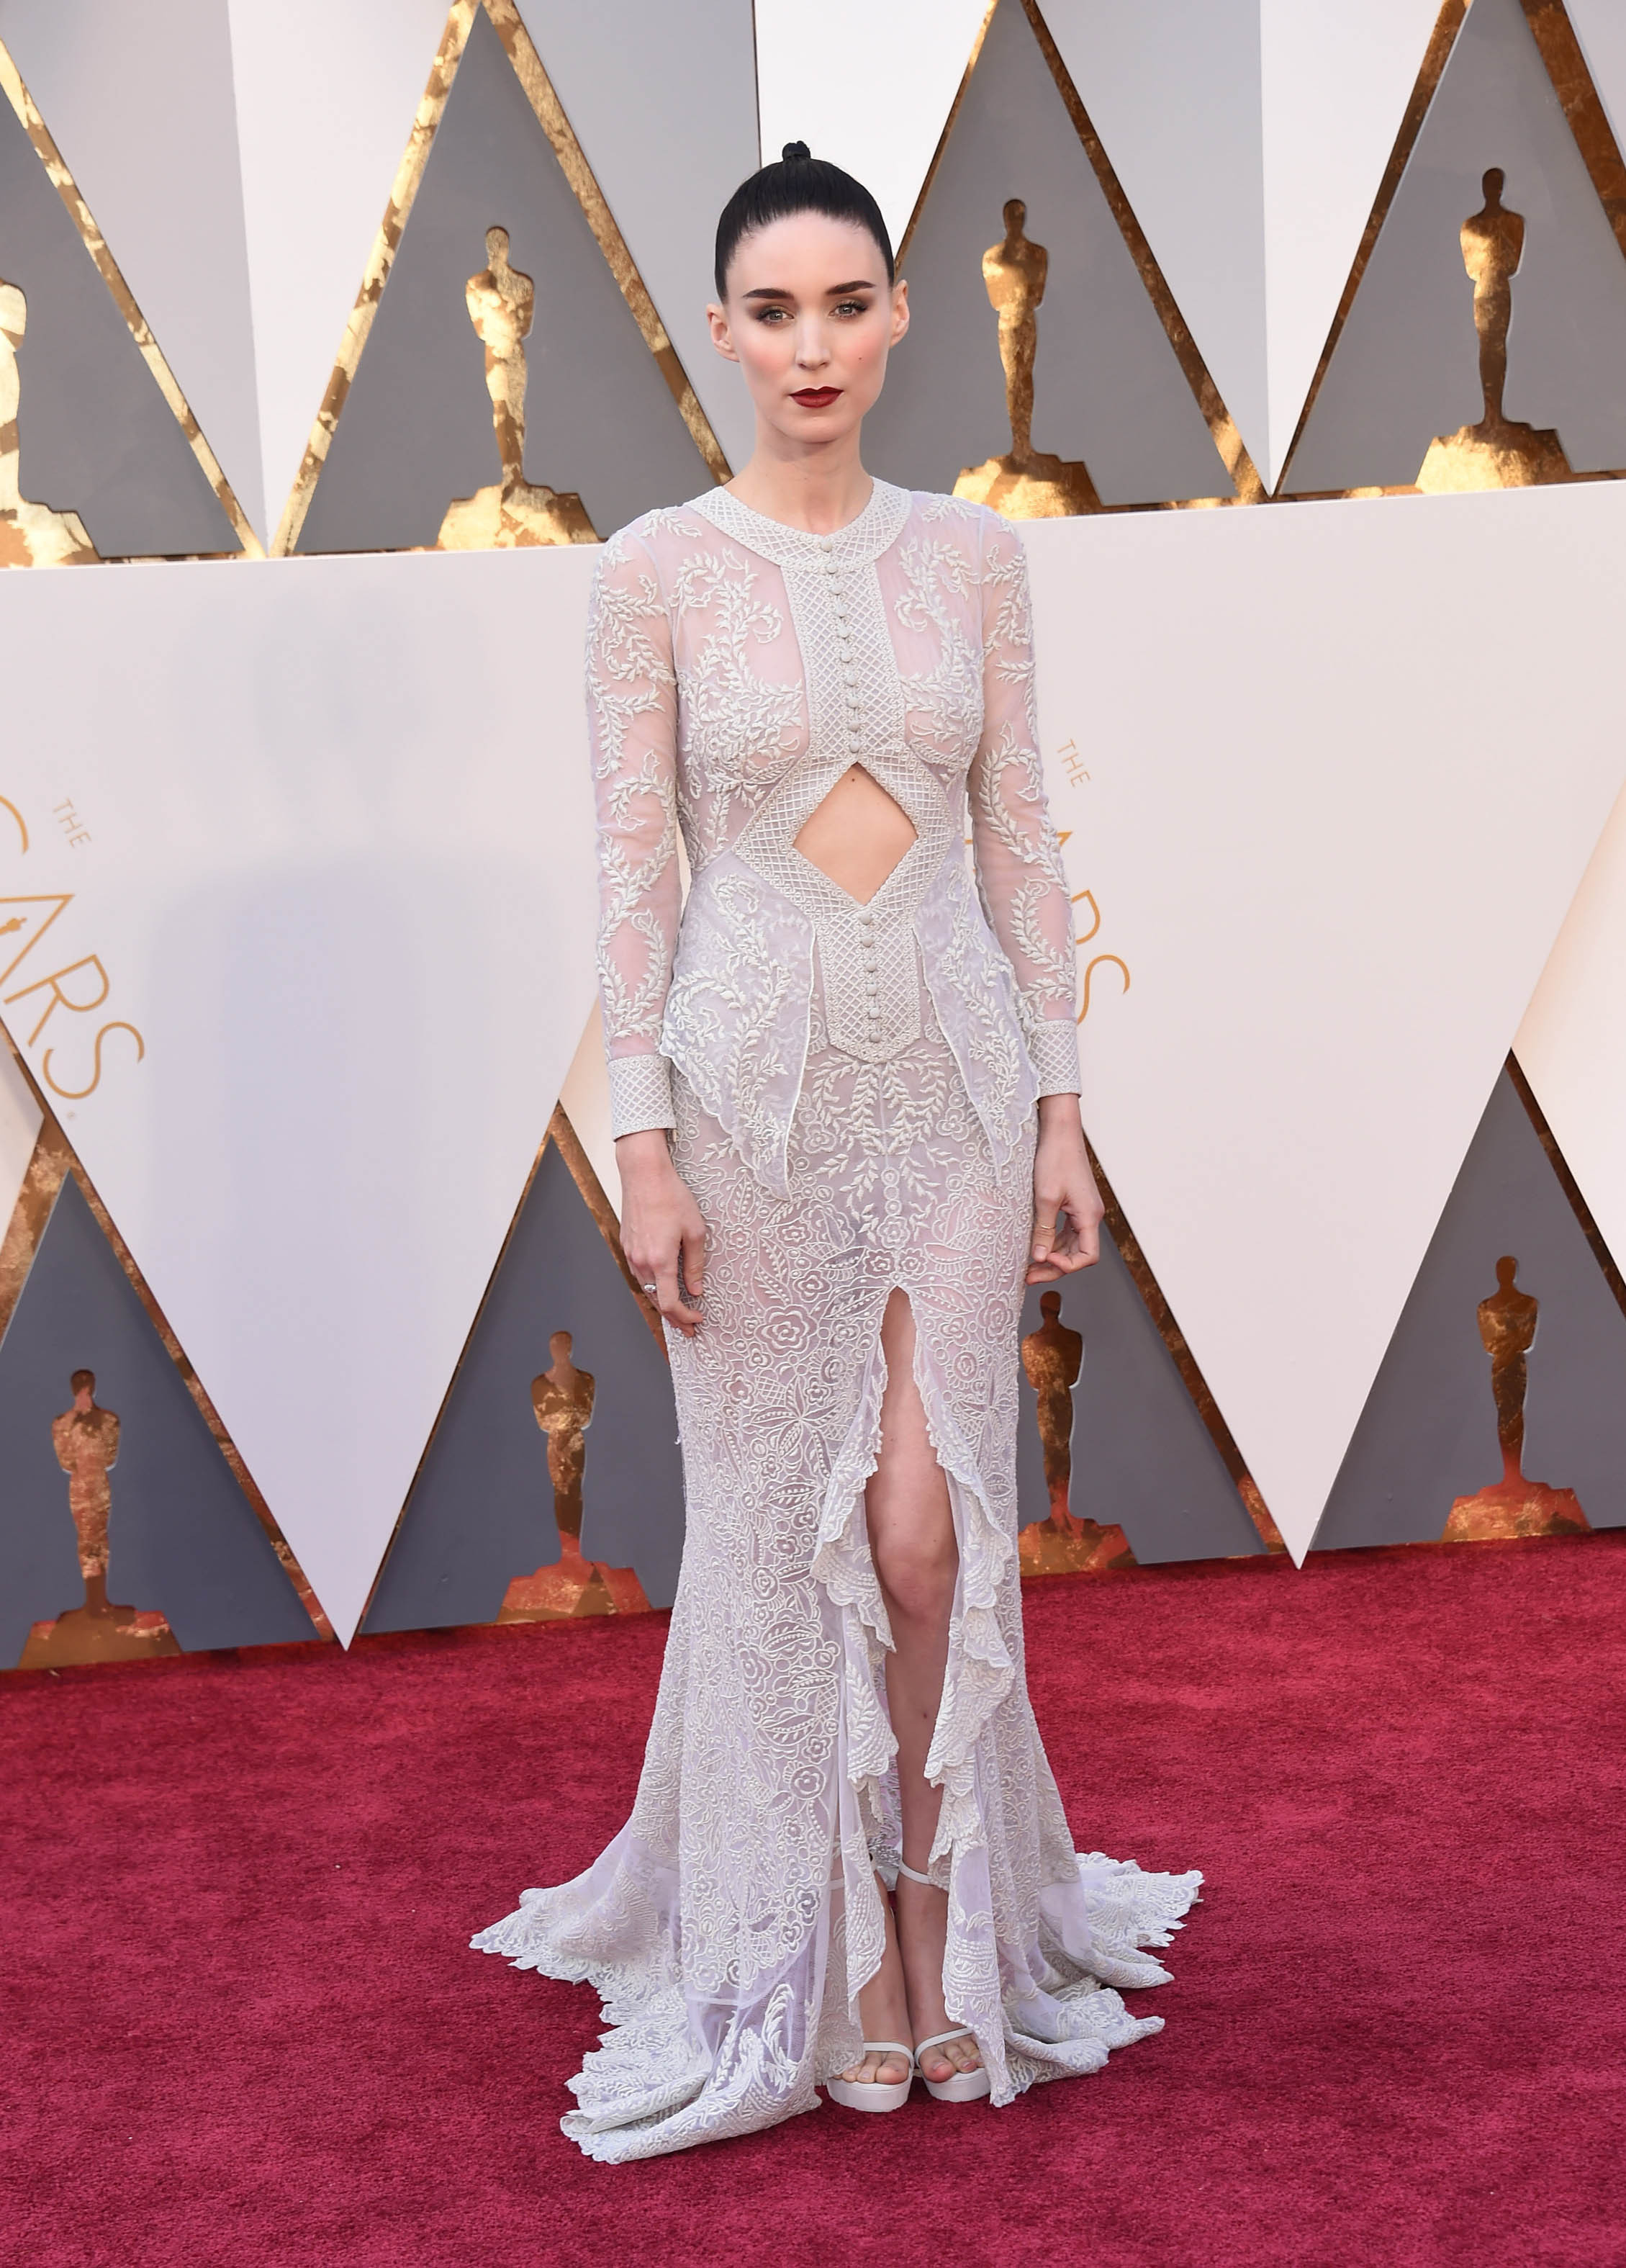 Photo by: KGC-11/starmaxinc.com STAR MAX Copyright 2016 ALL RIGHTS RESERVED Telephone/Fax: (212) 995-1196 2/28/16 Rooney Mara at the 88th Annual Academy Awards (Oscars). (Hollywood, CA, USA)